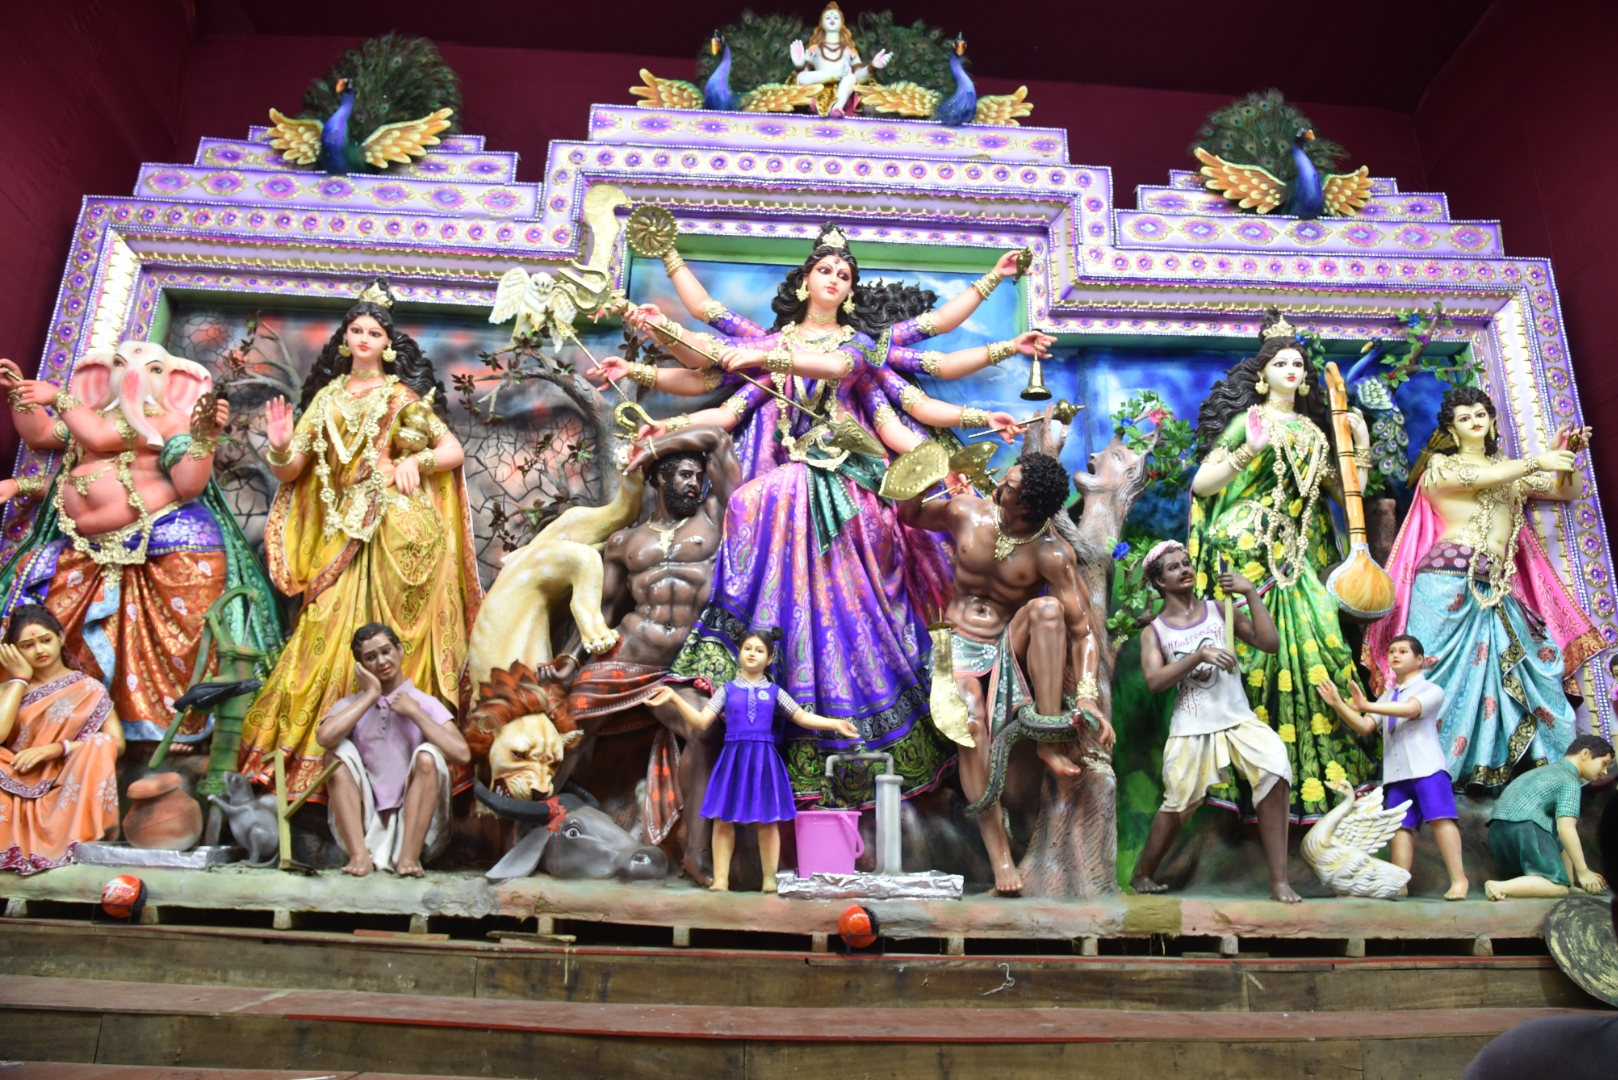 Youth Association of Md. Ali Park Celebrates 51st Year with the Theme Murugan Temple of Kerala